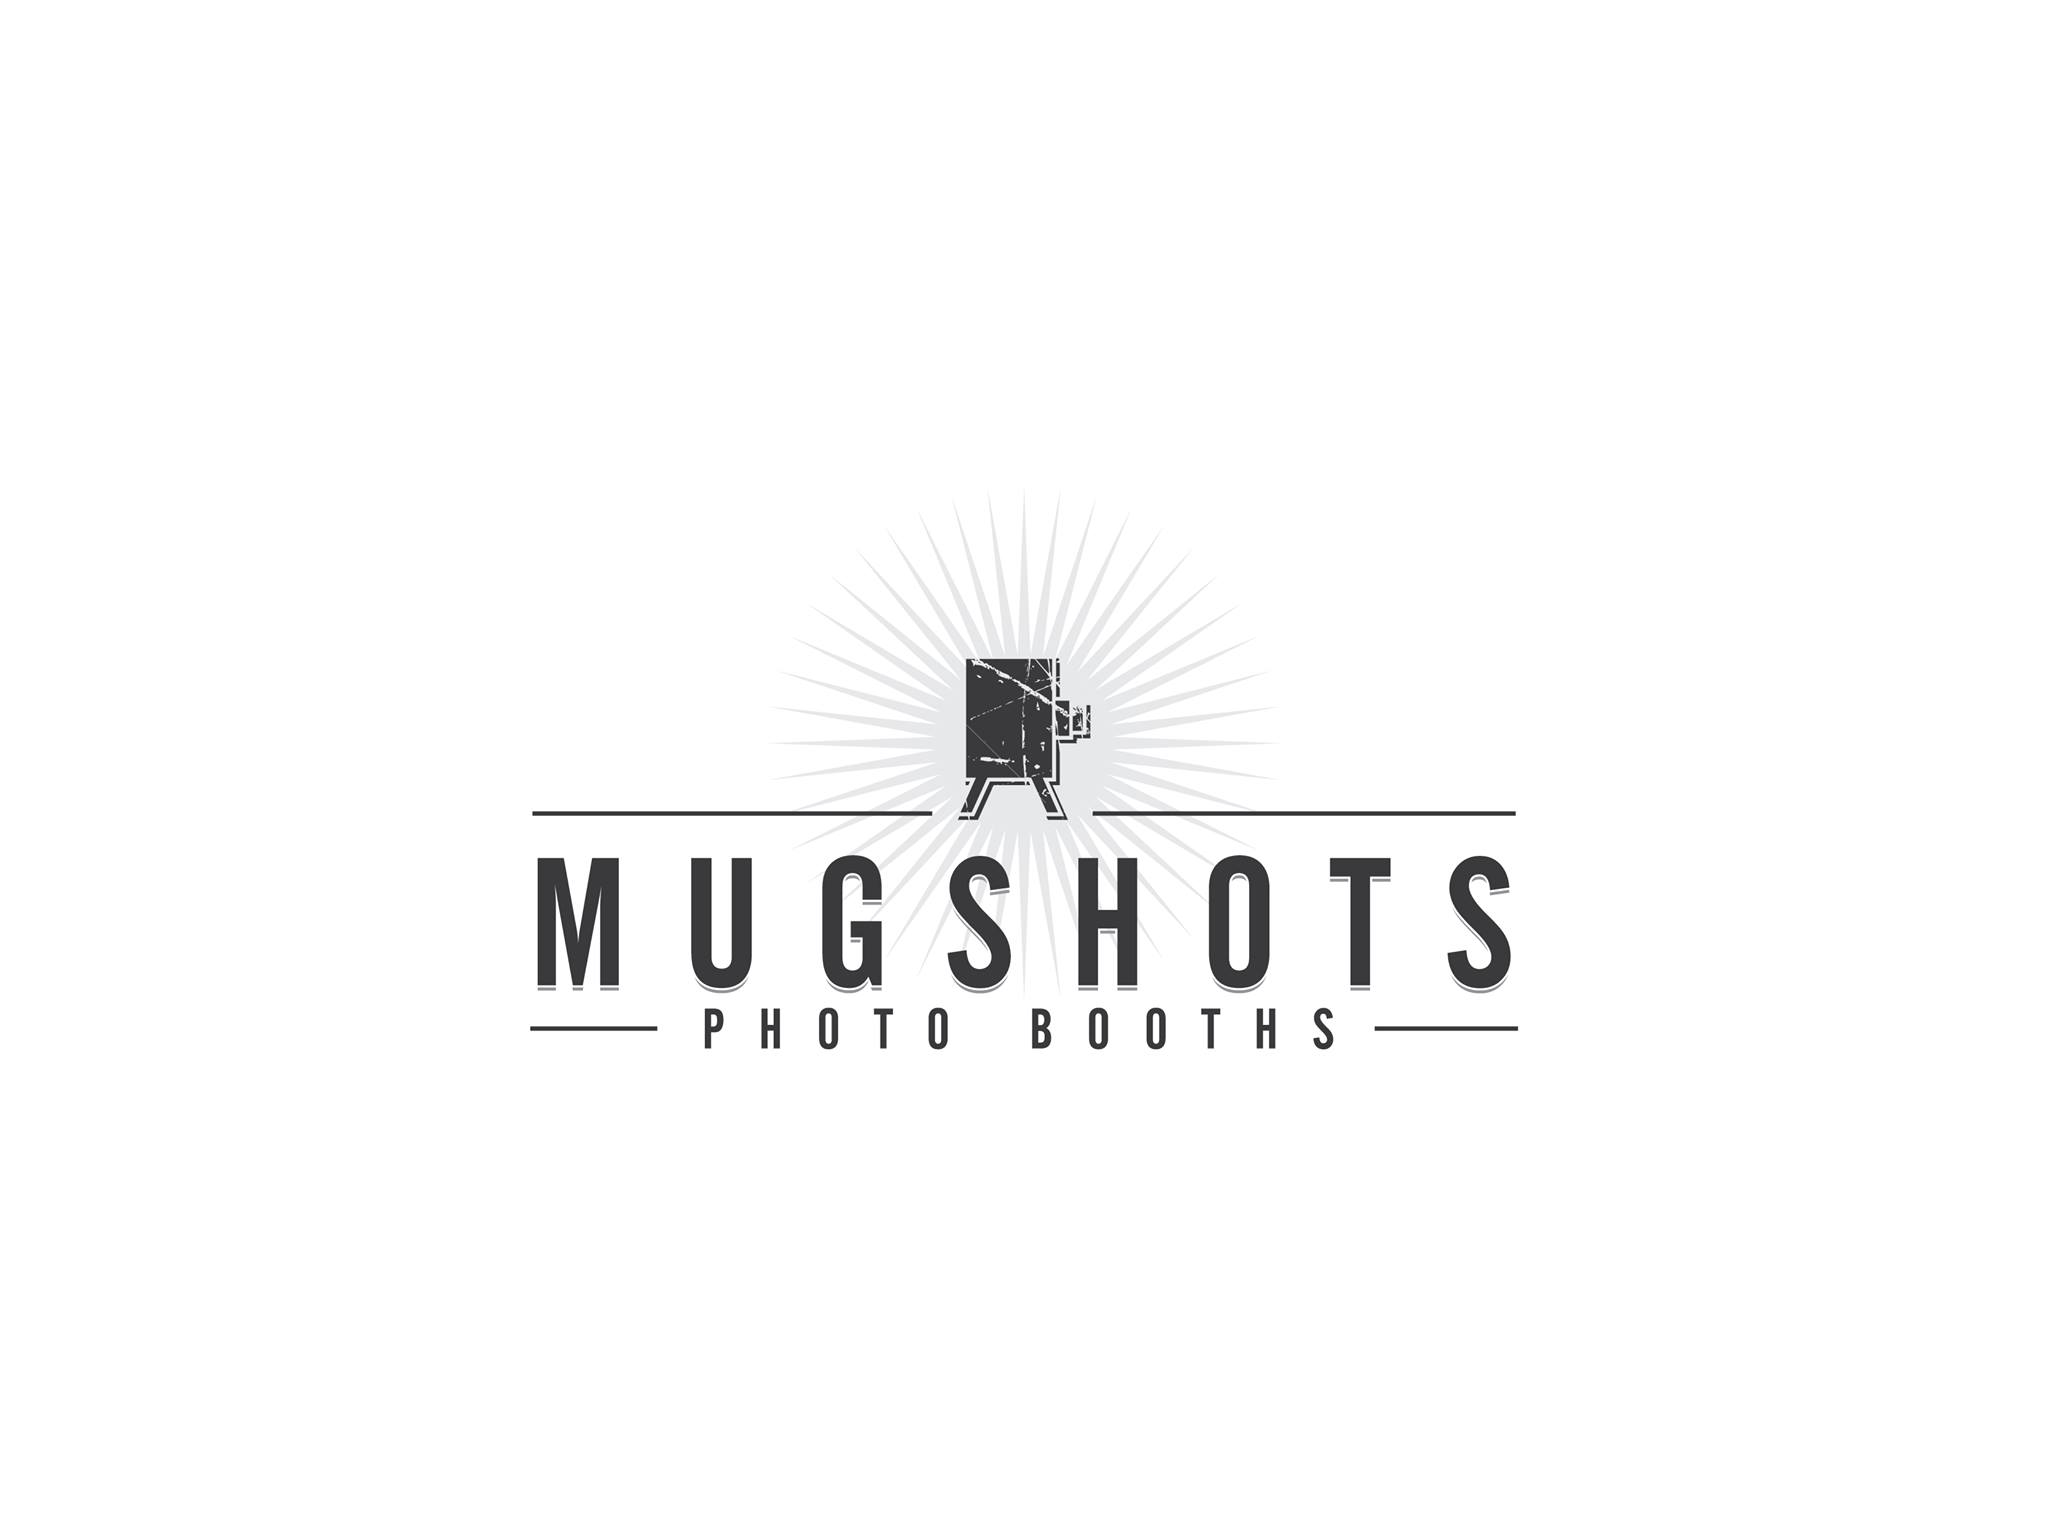 mugshots photobooth